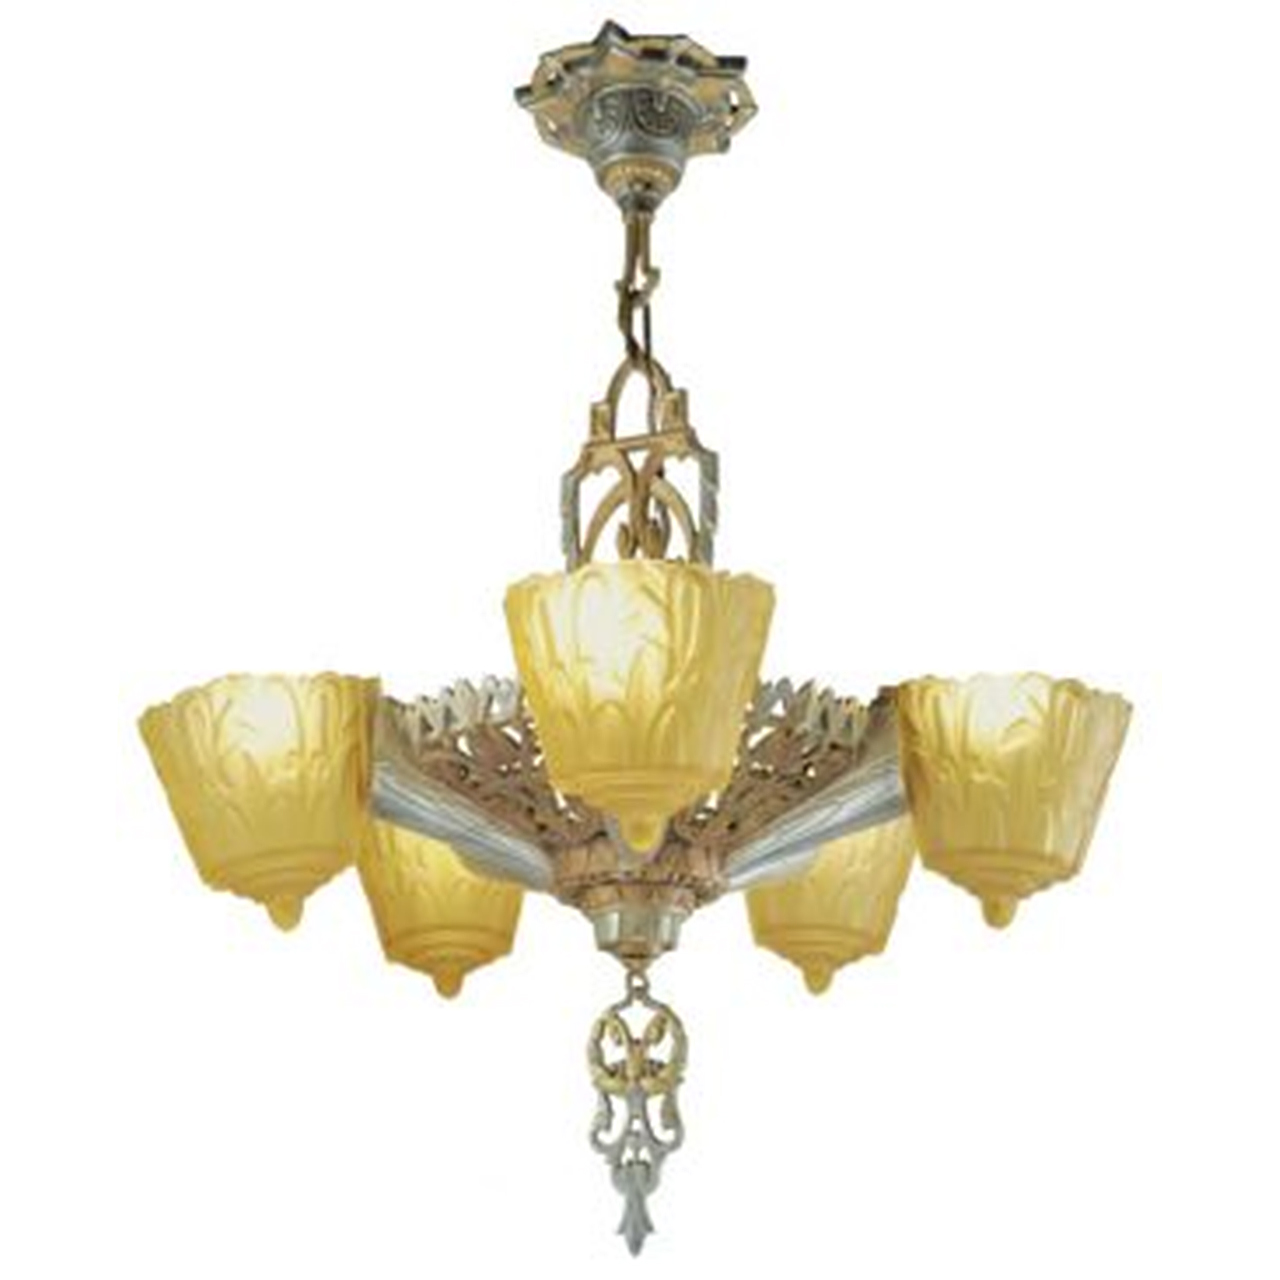 Antique art deco slip shade 1930s nile chandelier by lincoln mnf antique art deco slip shade 1930s nile chandelier by lincoln mnf ant 429 for sale arubaitofo Image collections